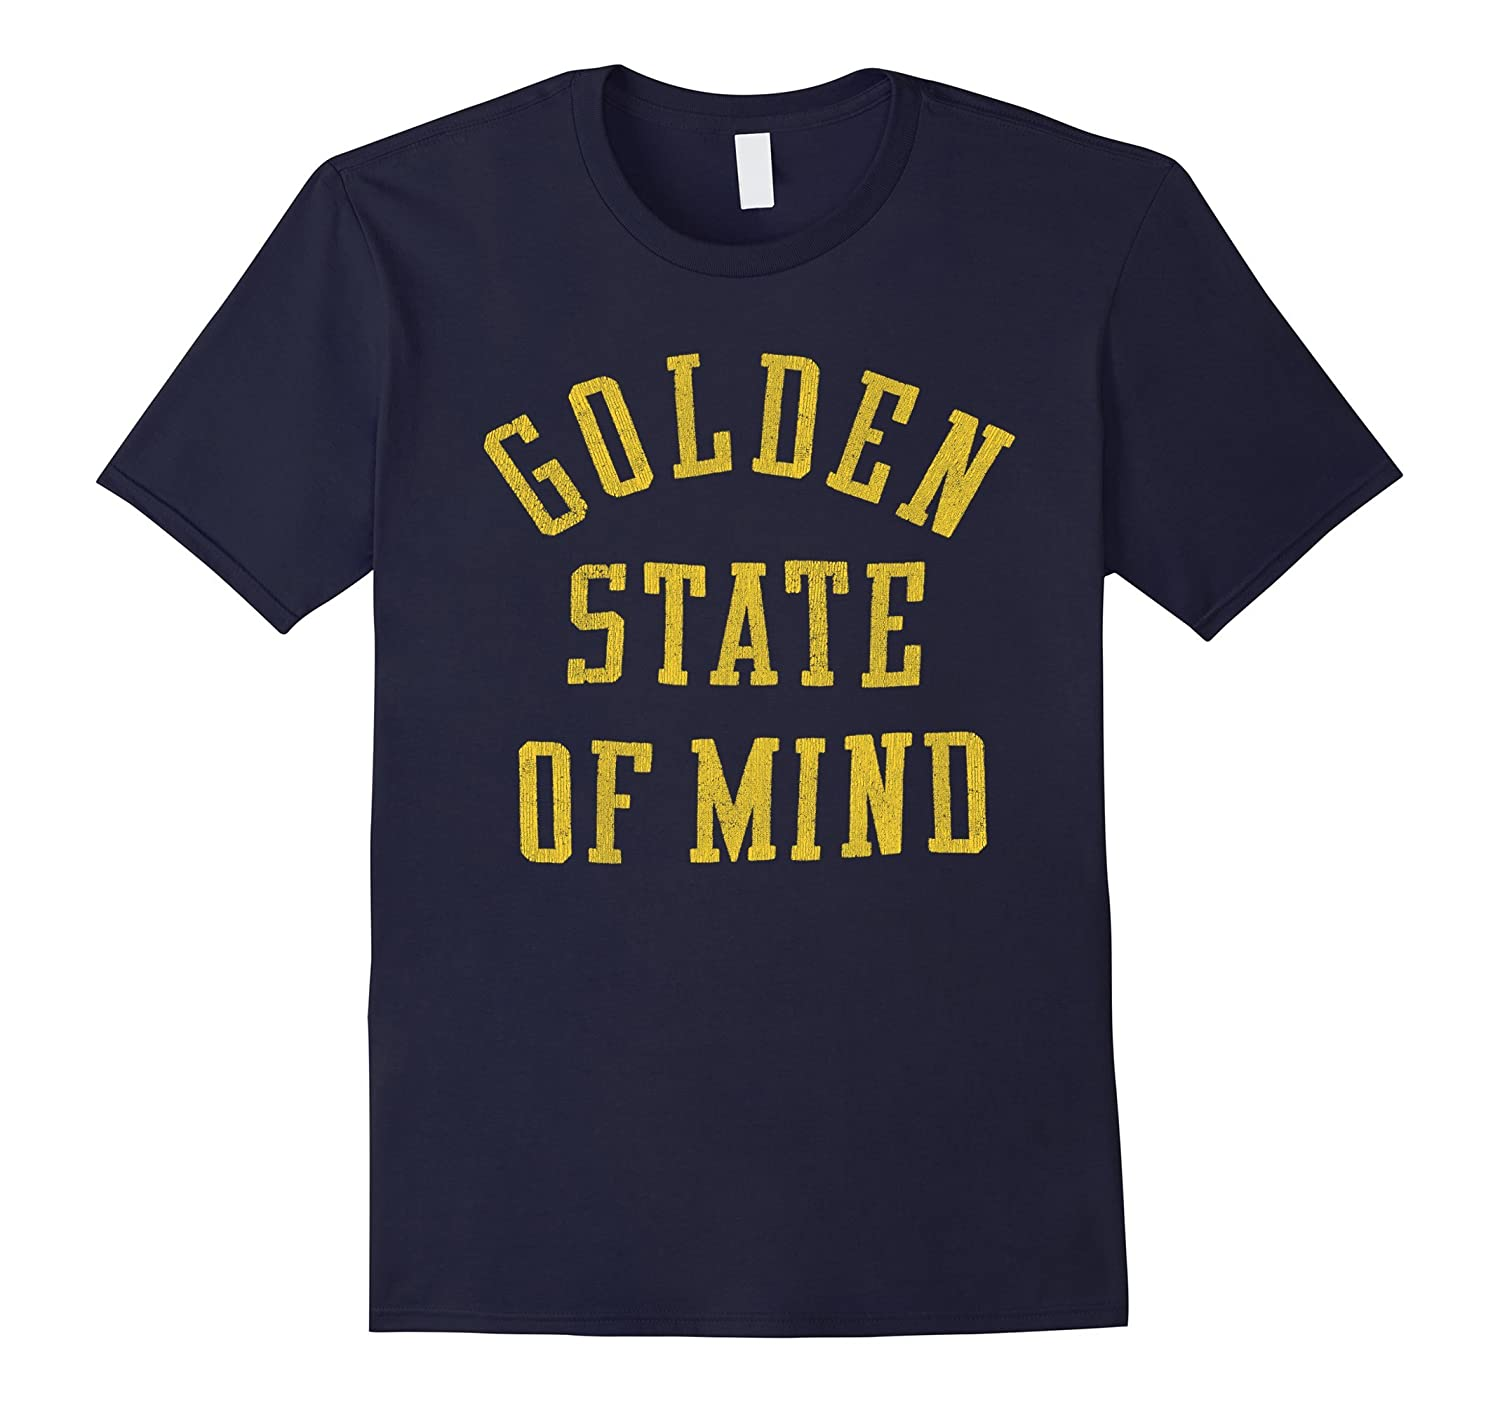 Golden State of Mind 2017 Champions DUB NATION DUBS shirt-Art